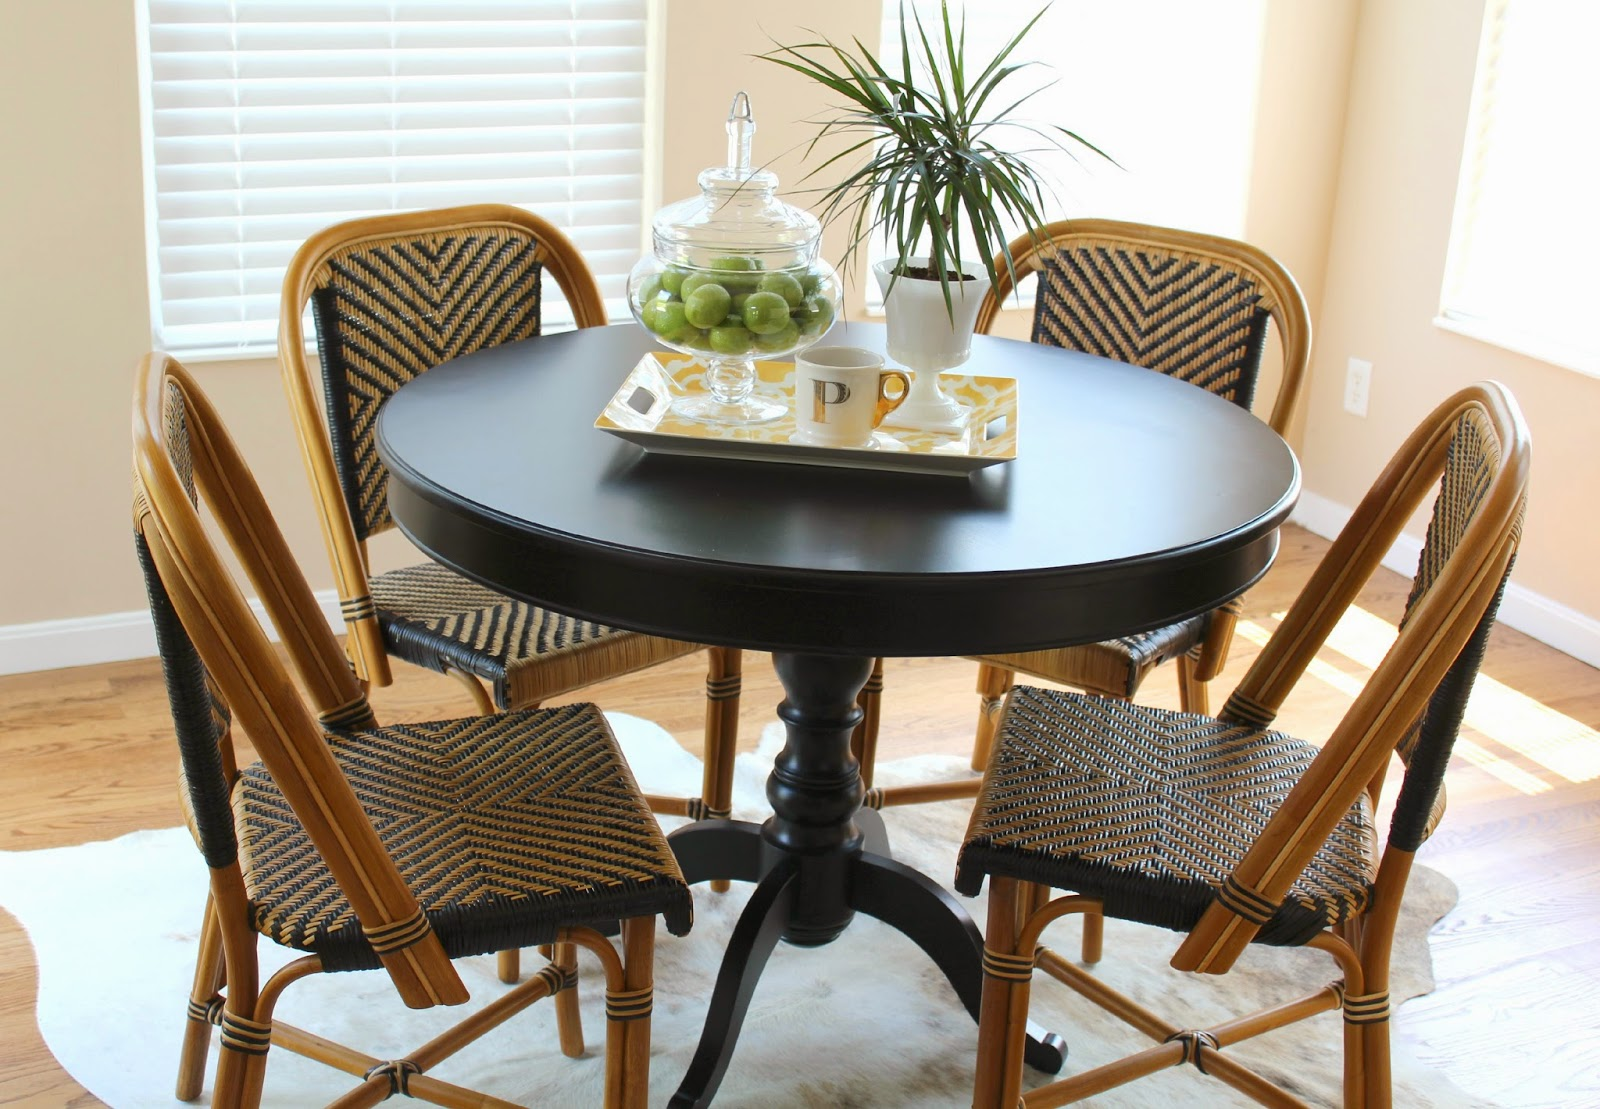 Ballard Designs Upholstered Dining Chairs Wooden High For Sale How I Stumbled Upon 40 From